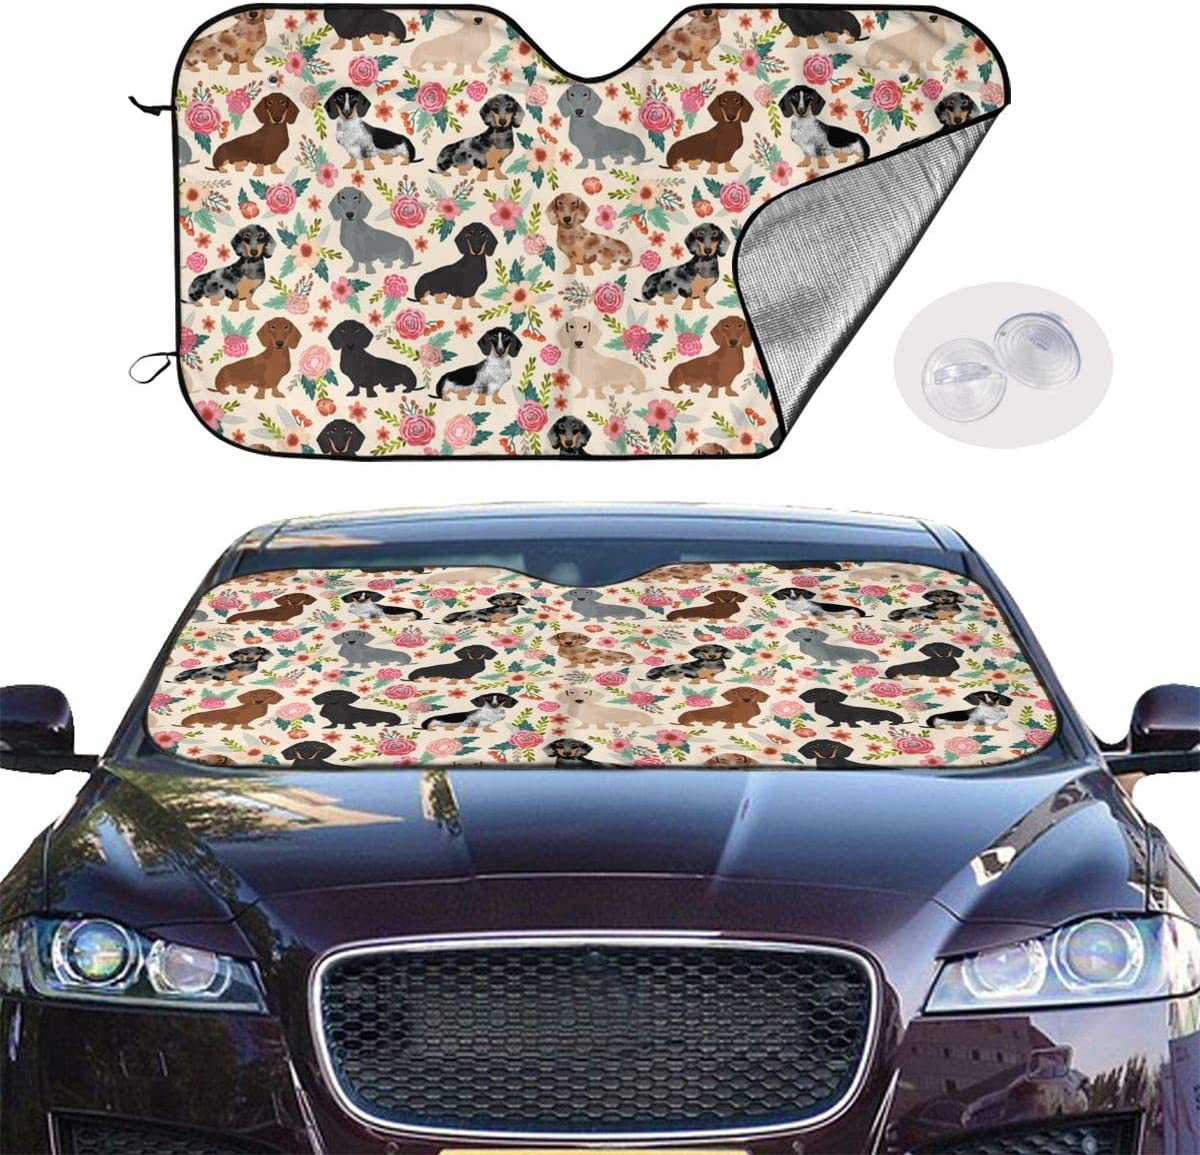 27.5 X 51 Inch Automotive Sunshades Easy to Fold and Store . Personalized Customized Car Glass Sunshade Flowers Pink Dachshund Summer Car Cooling Windshield Sunshade